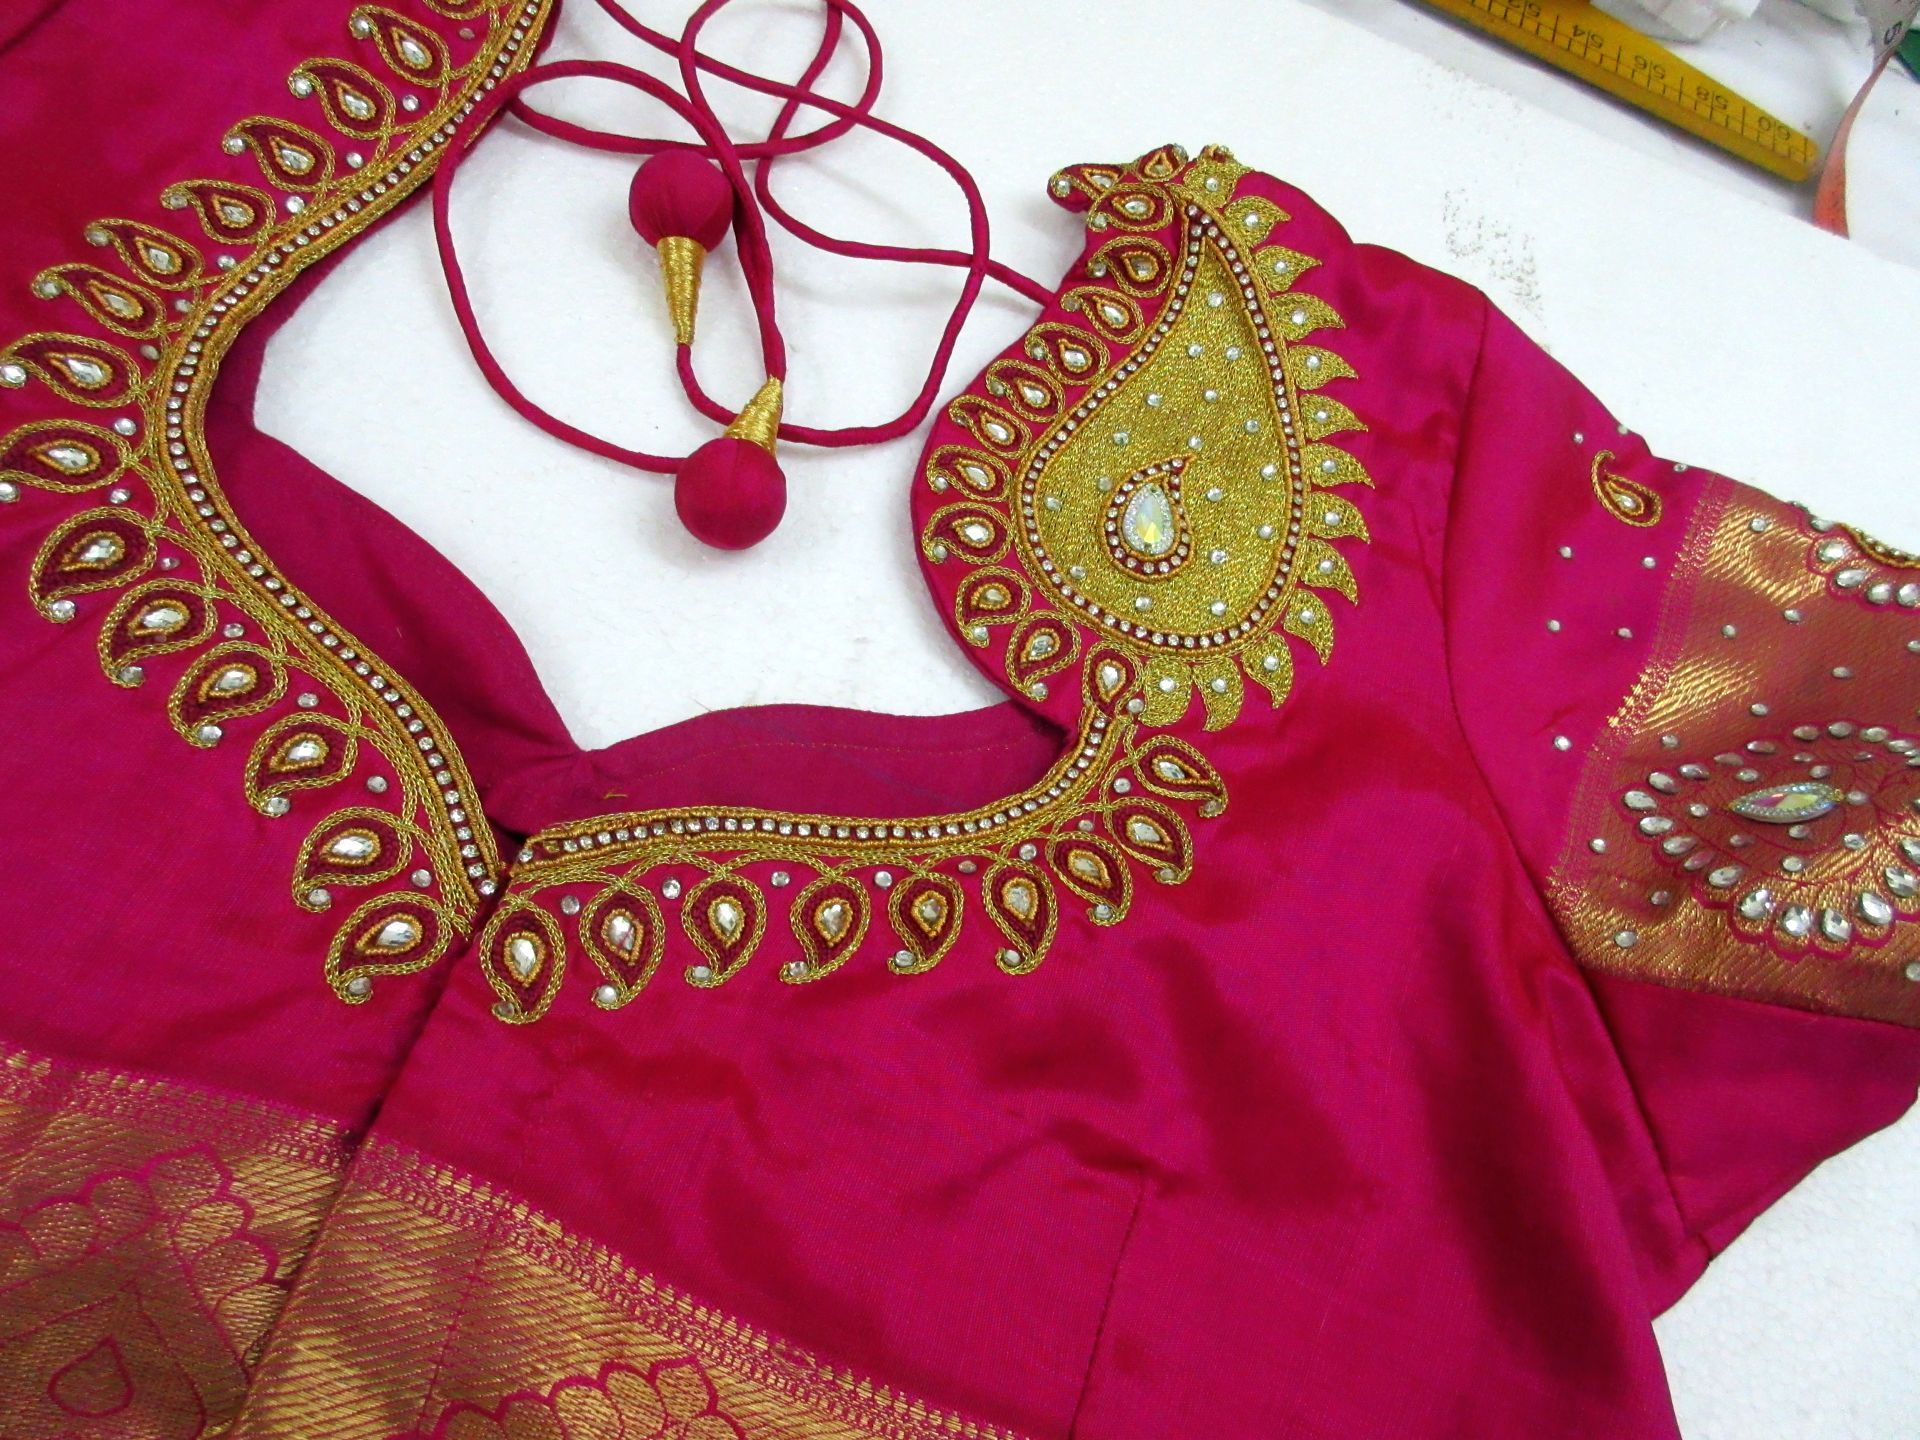 Kundan work hand embroidery samriddhi creations